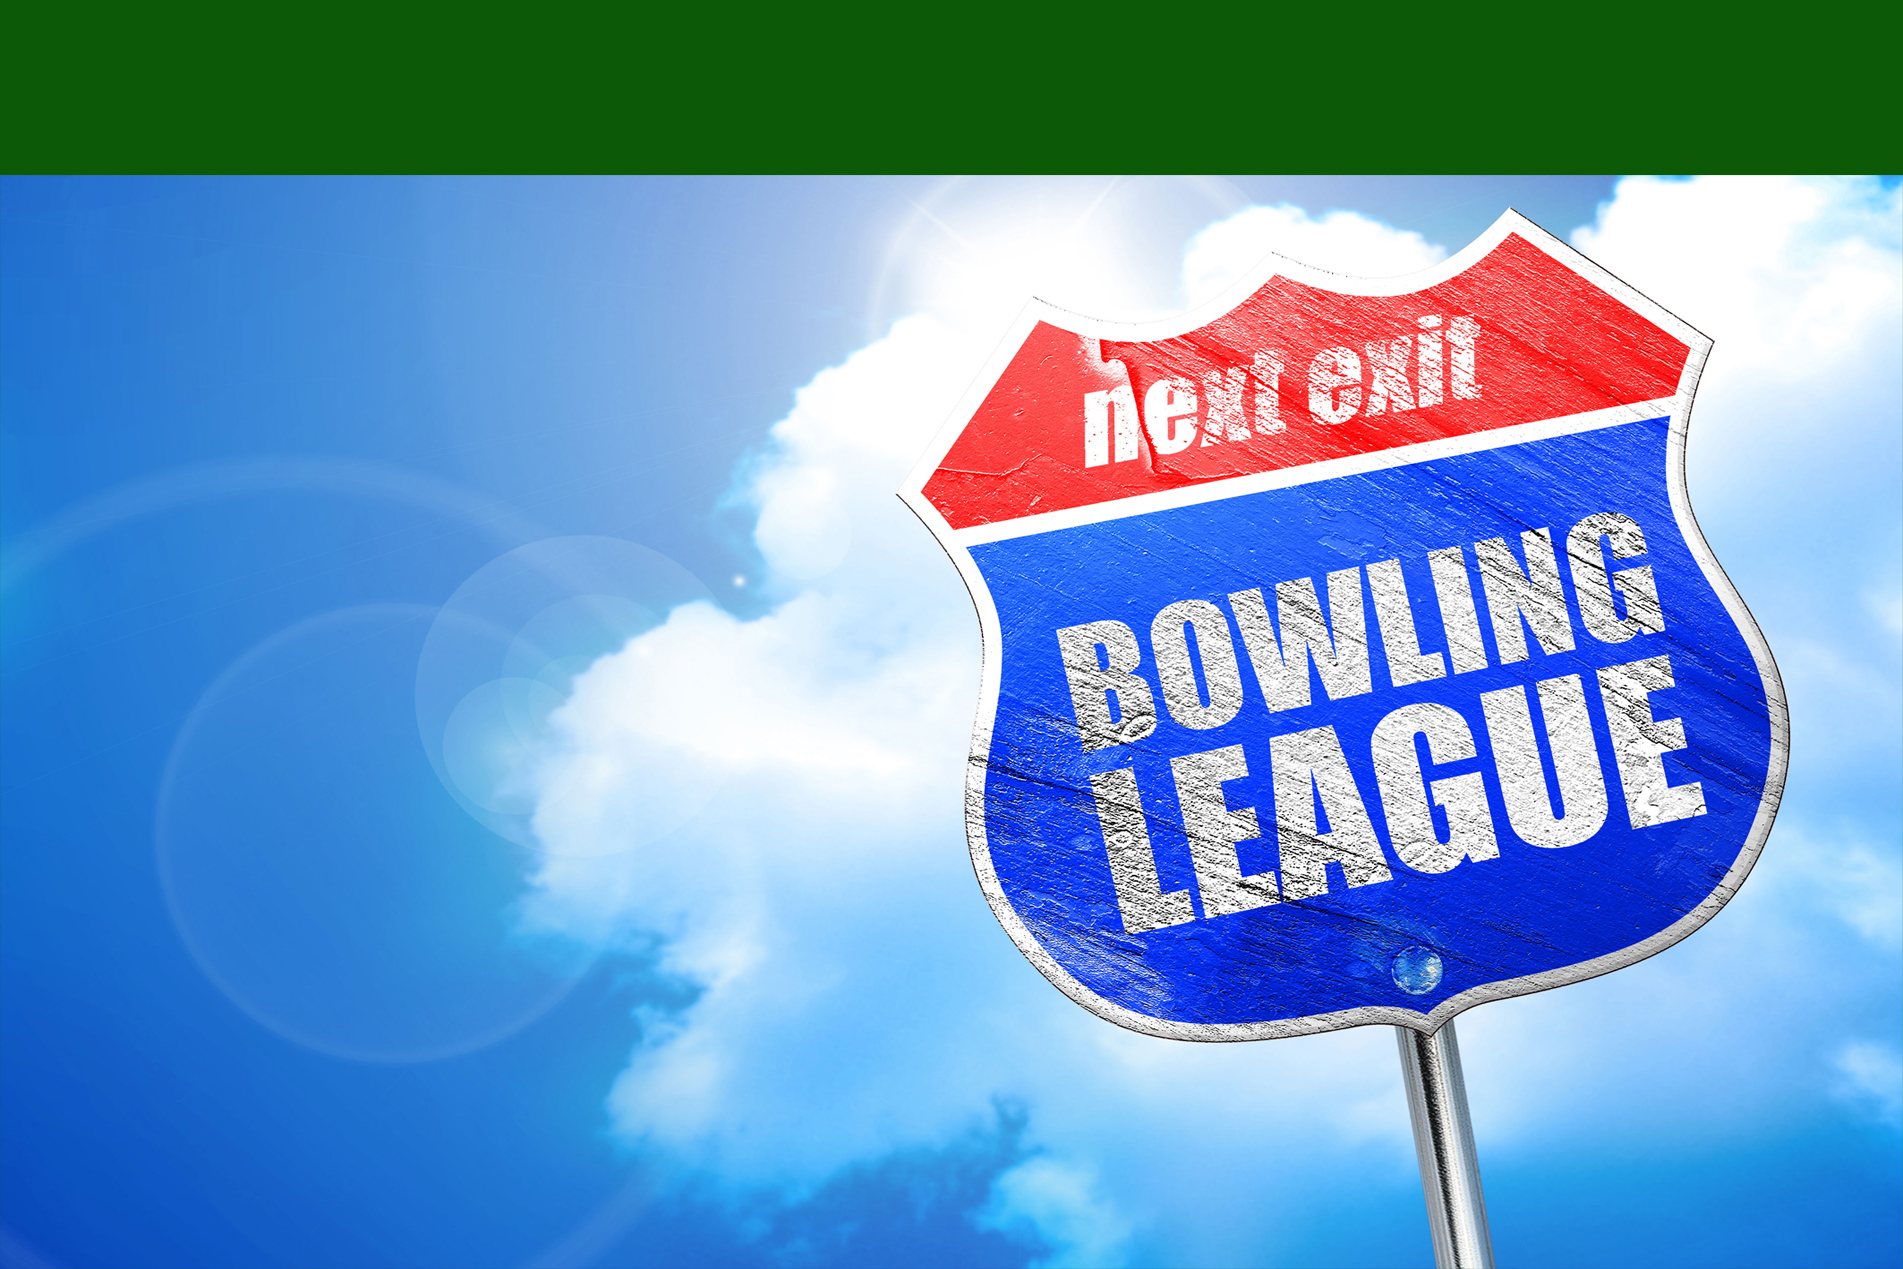 Street sign that says Bowling League